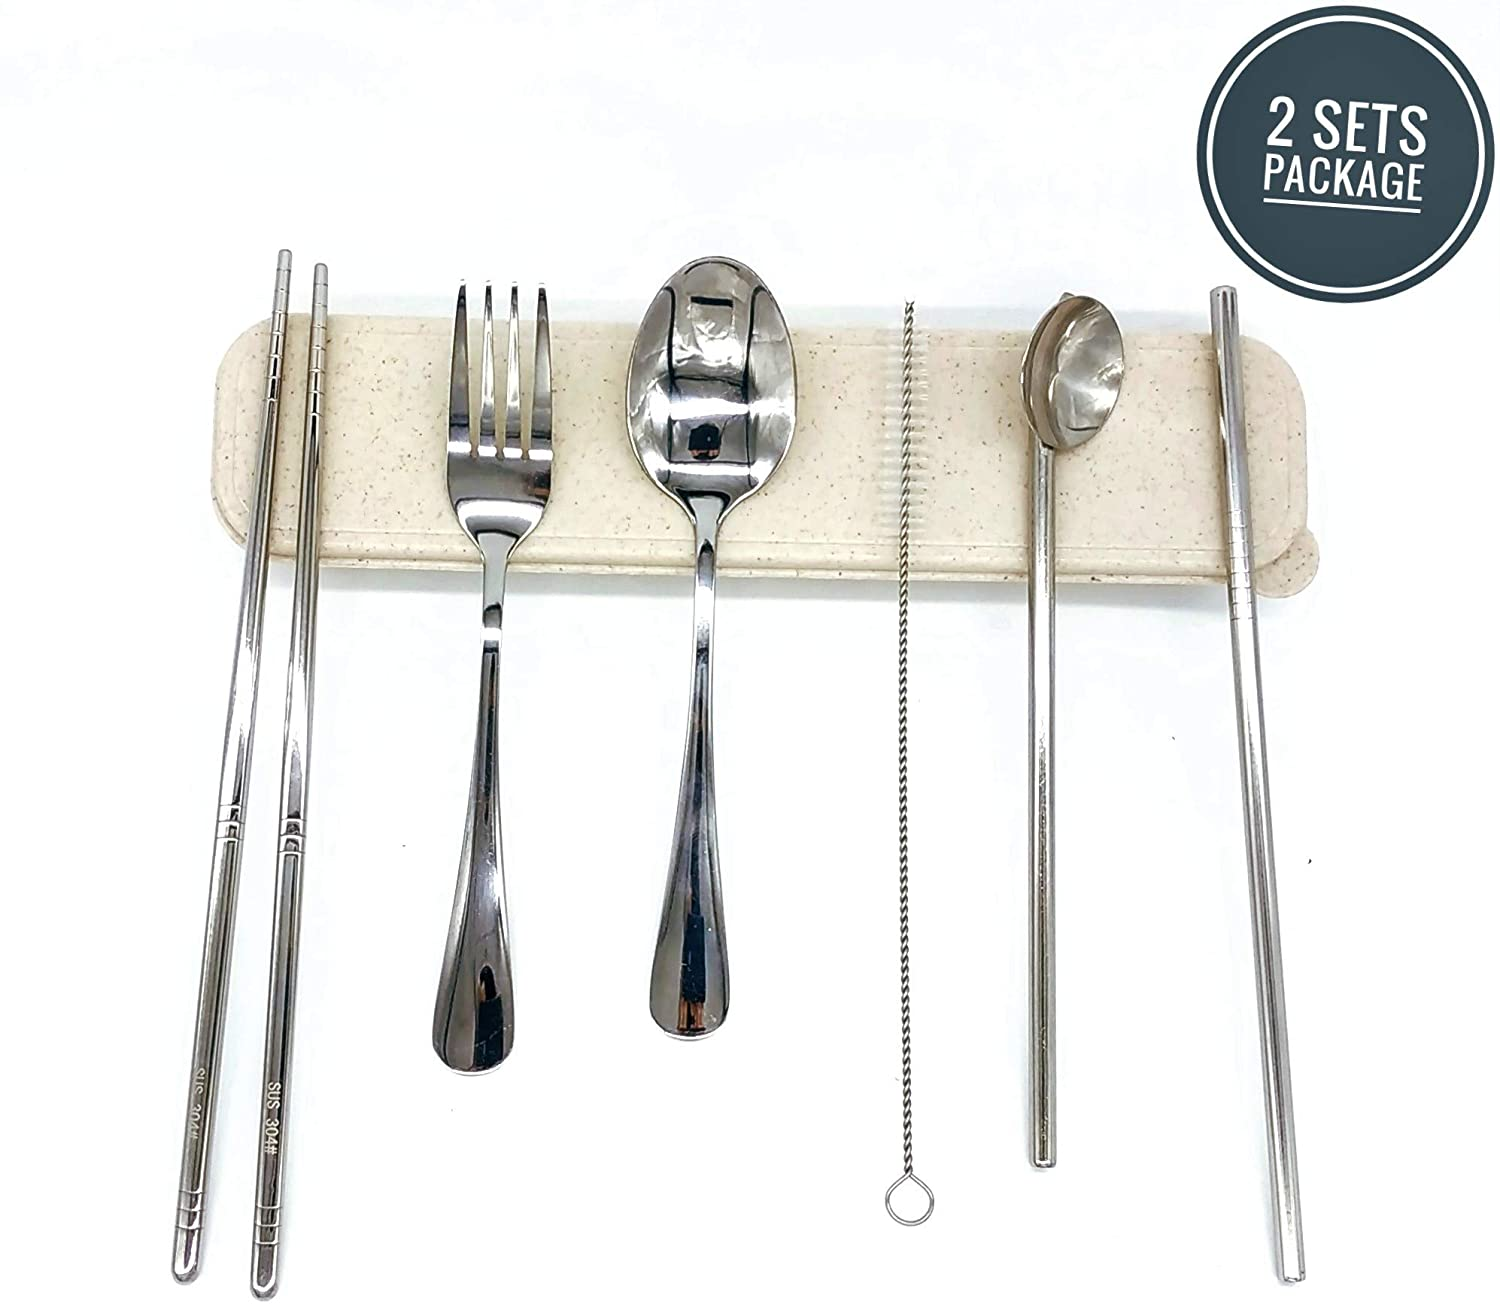 2 packs of 7pcs Portable Utensils boxset, Reusable Travel Camping Cutlery Set, Fork,Spoon,Chopsticks,Cleaning Brush, Straight Straw,Straw Spoon,Portable Wheat Case - 304 Food Graded Stainless Steel